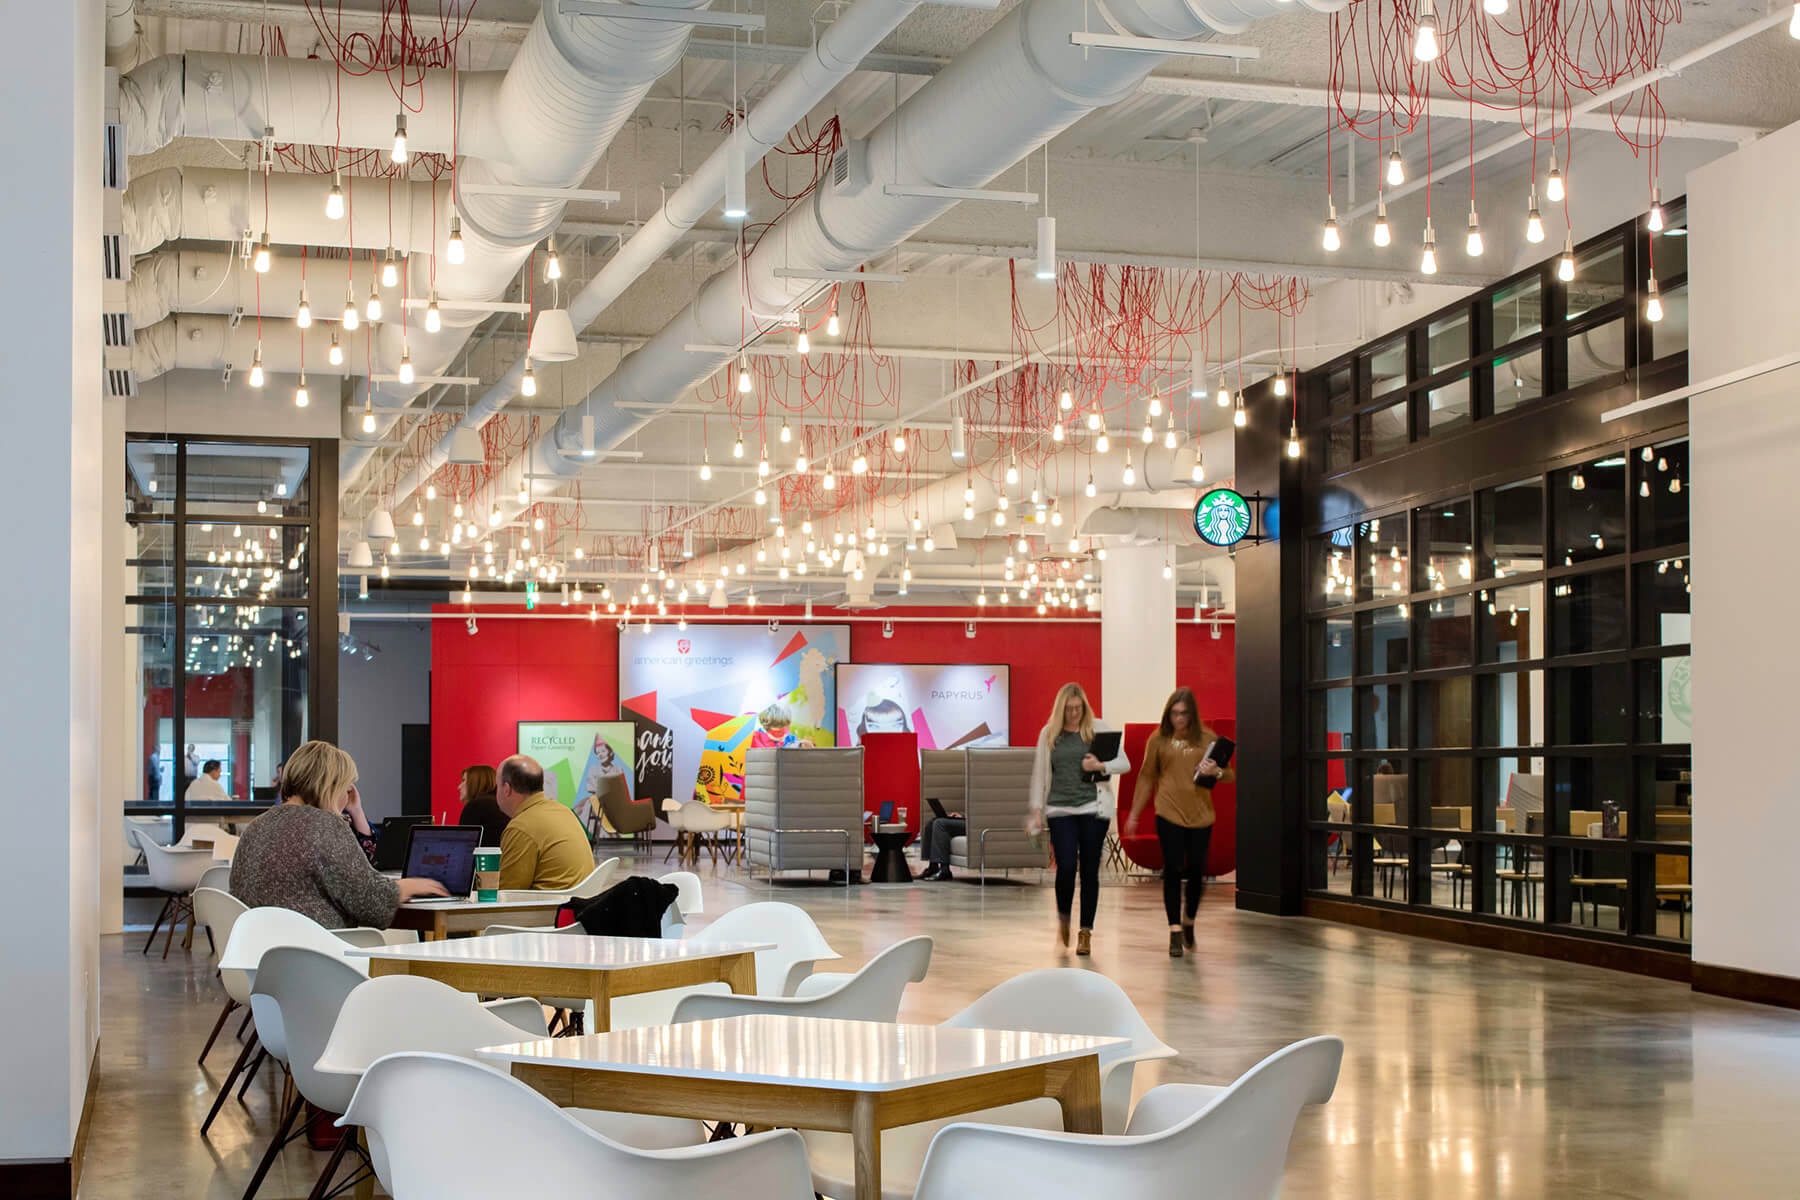 Callisonrtkl Designed American Greetings Headquarters Wins Aia Honor